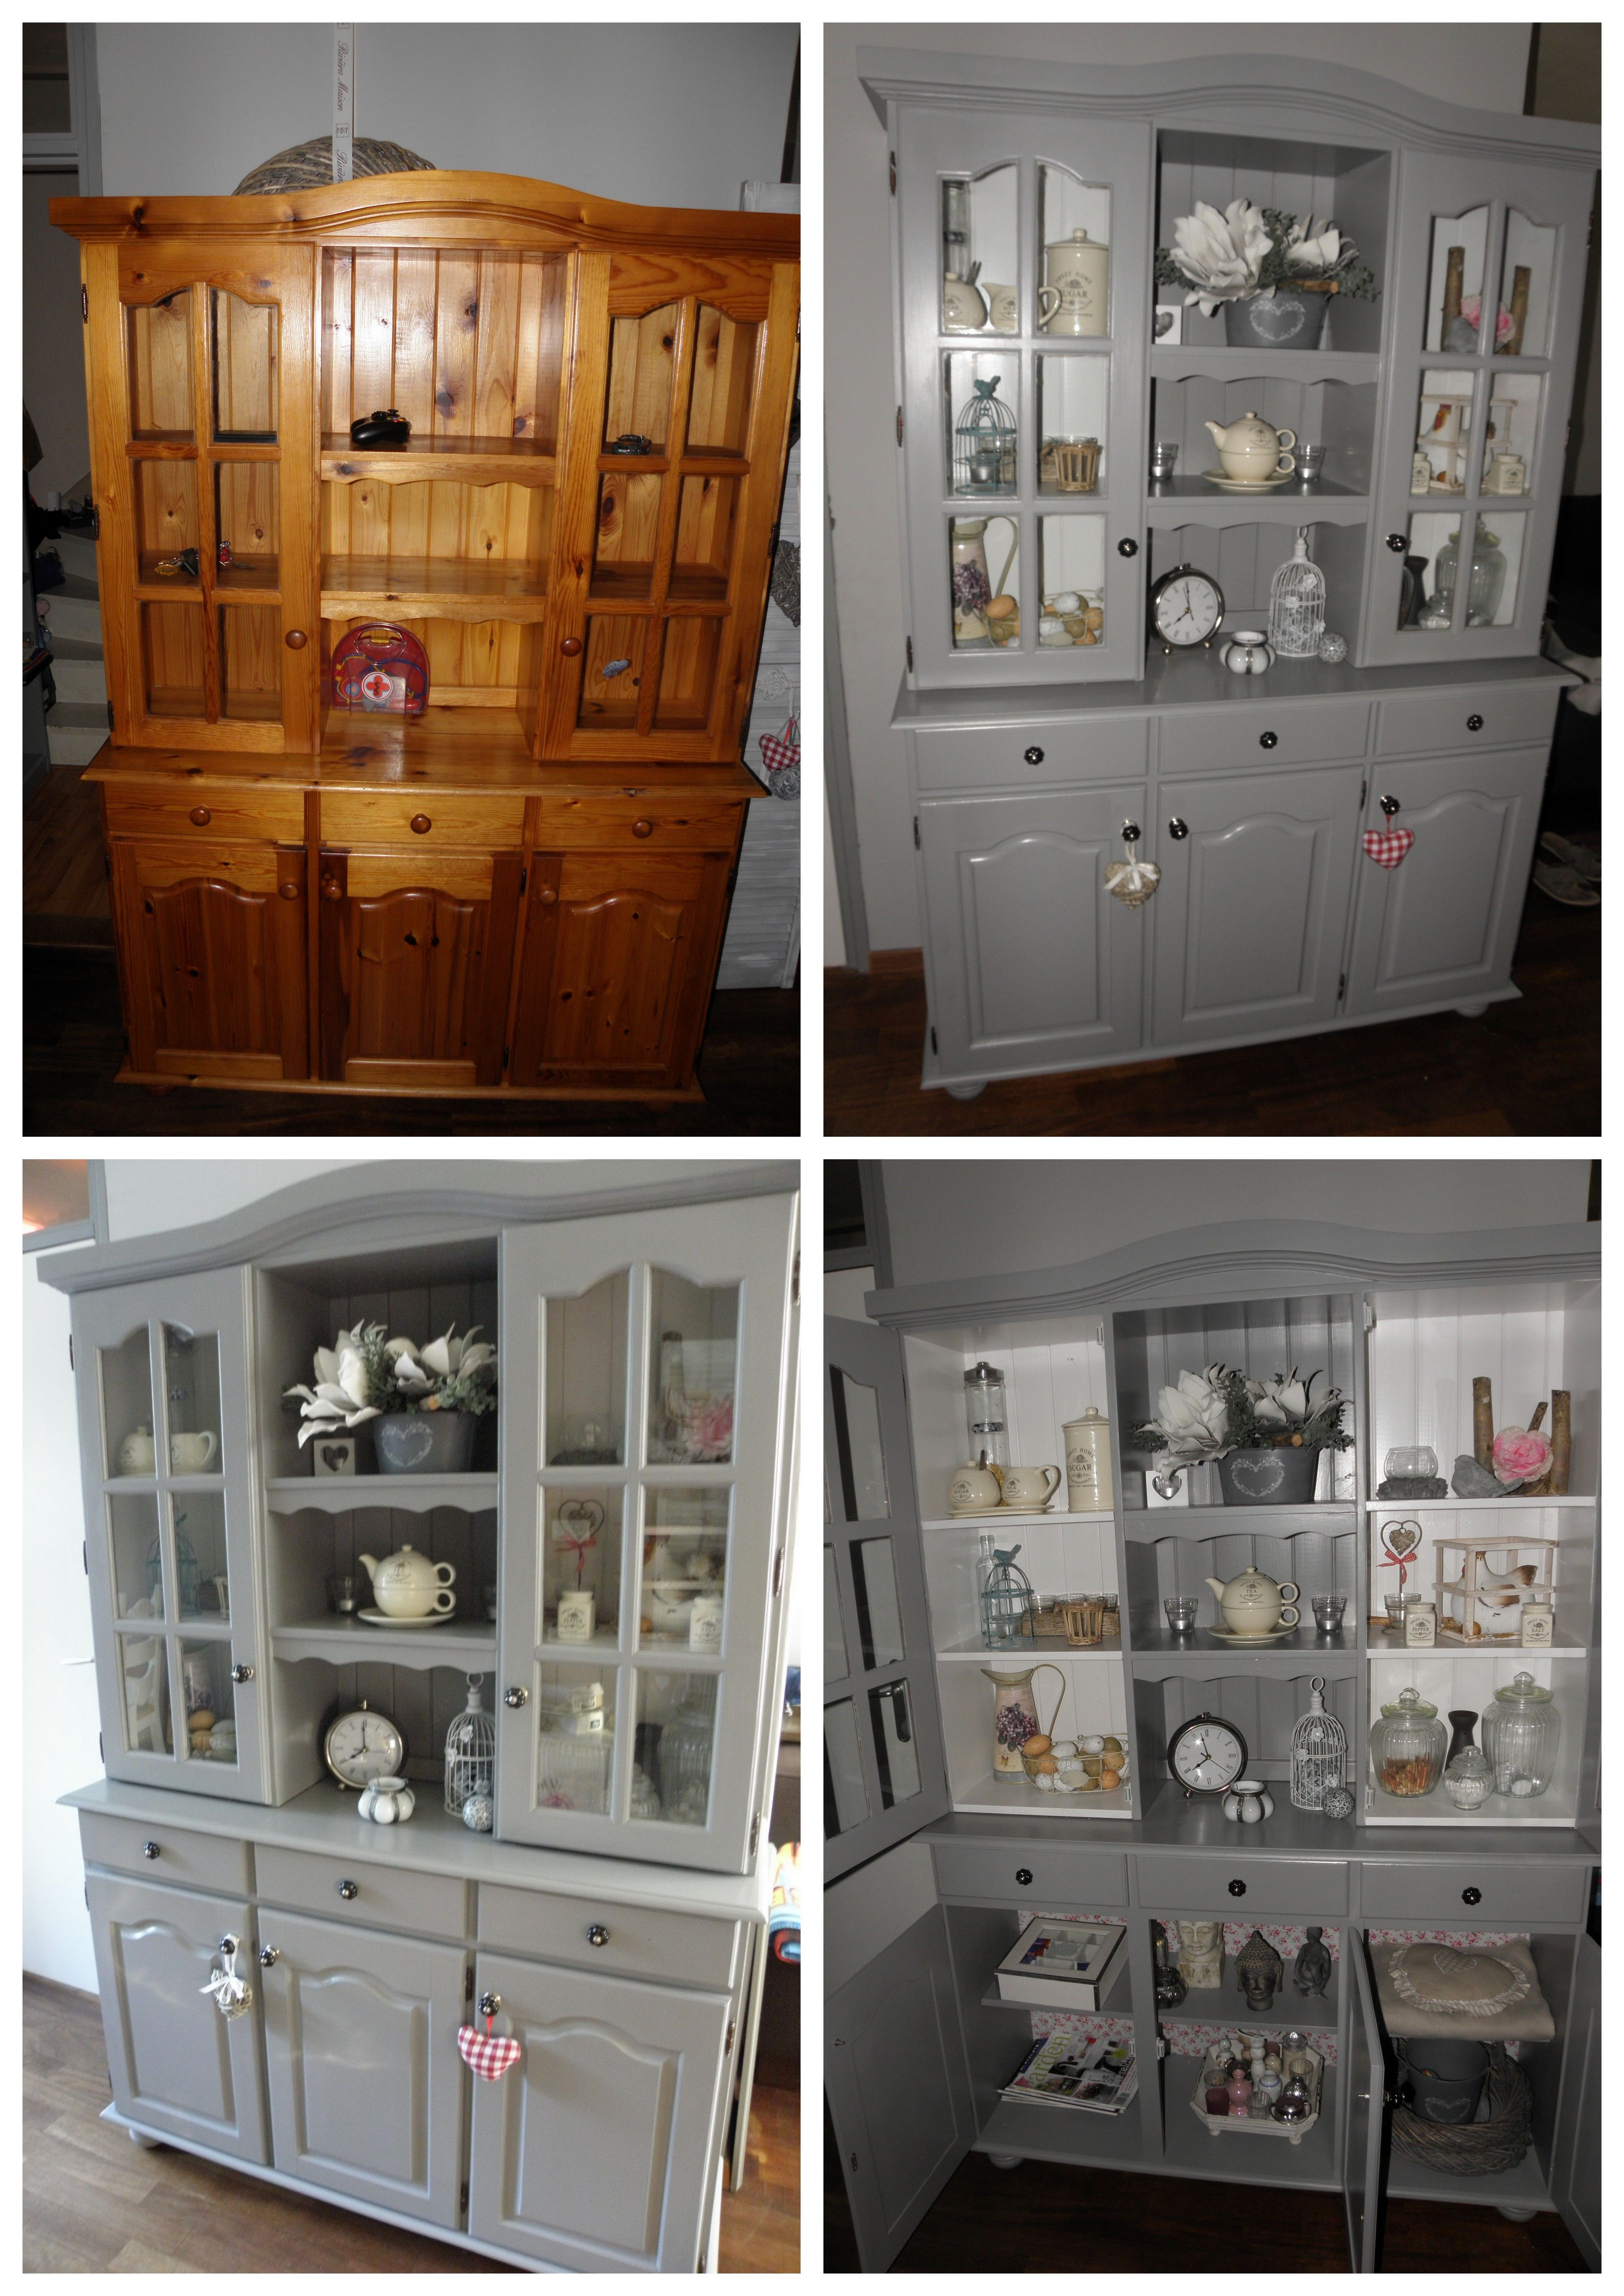 Buffetkast | ☆Great DIY Ideas ~ Part One☆ | Pinterest | Cocinas y ...